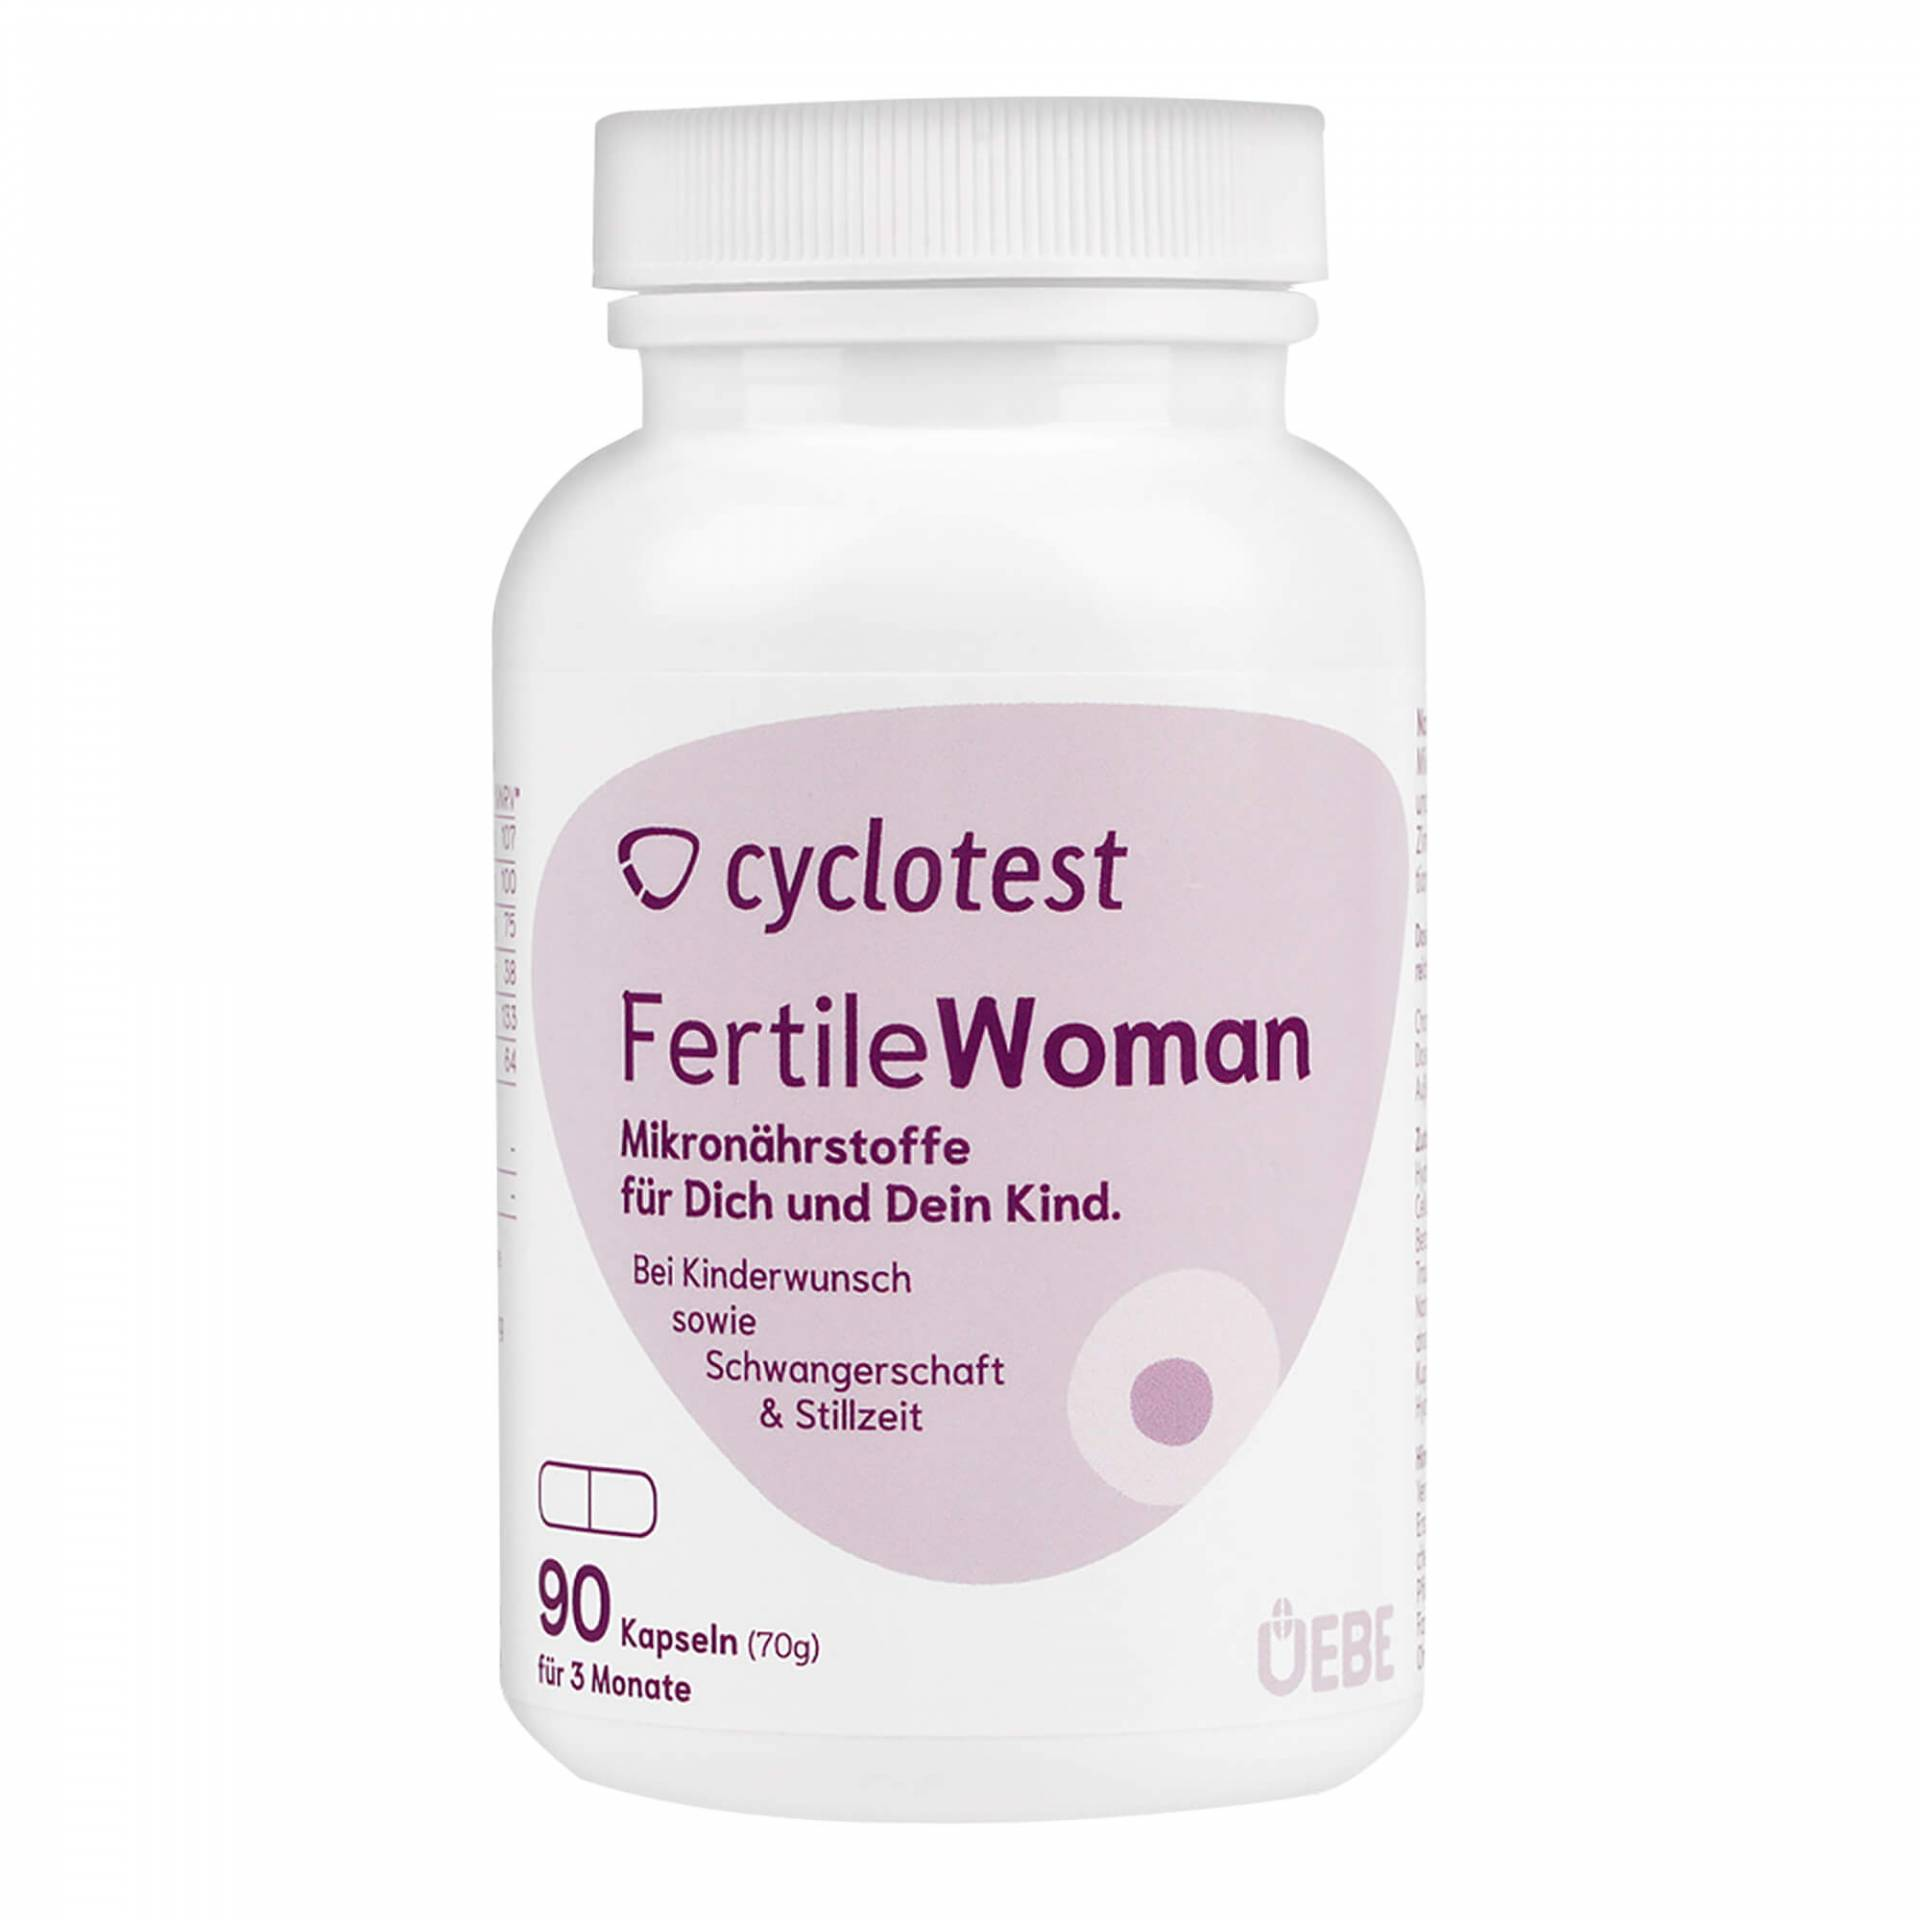 Cyclotest Fertile Woman von Uebe Medical GmbH